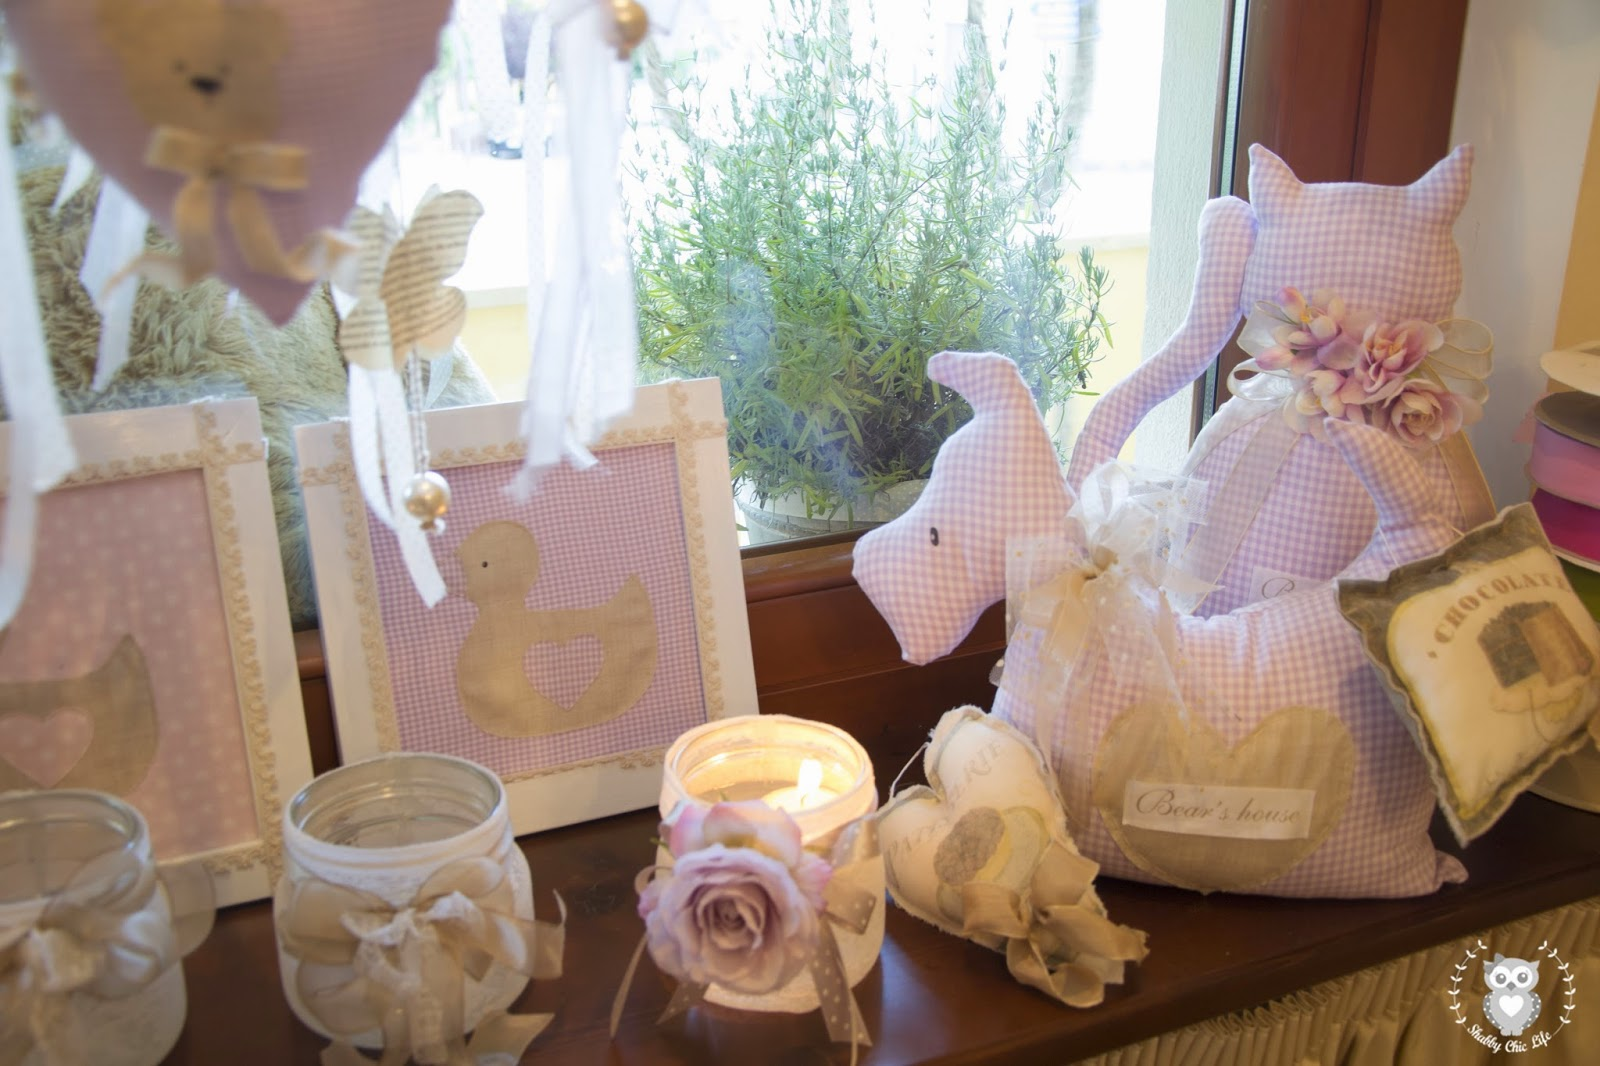 cucito creativo, shabby chic, bear's house